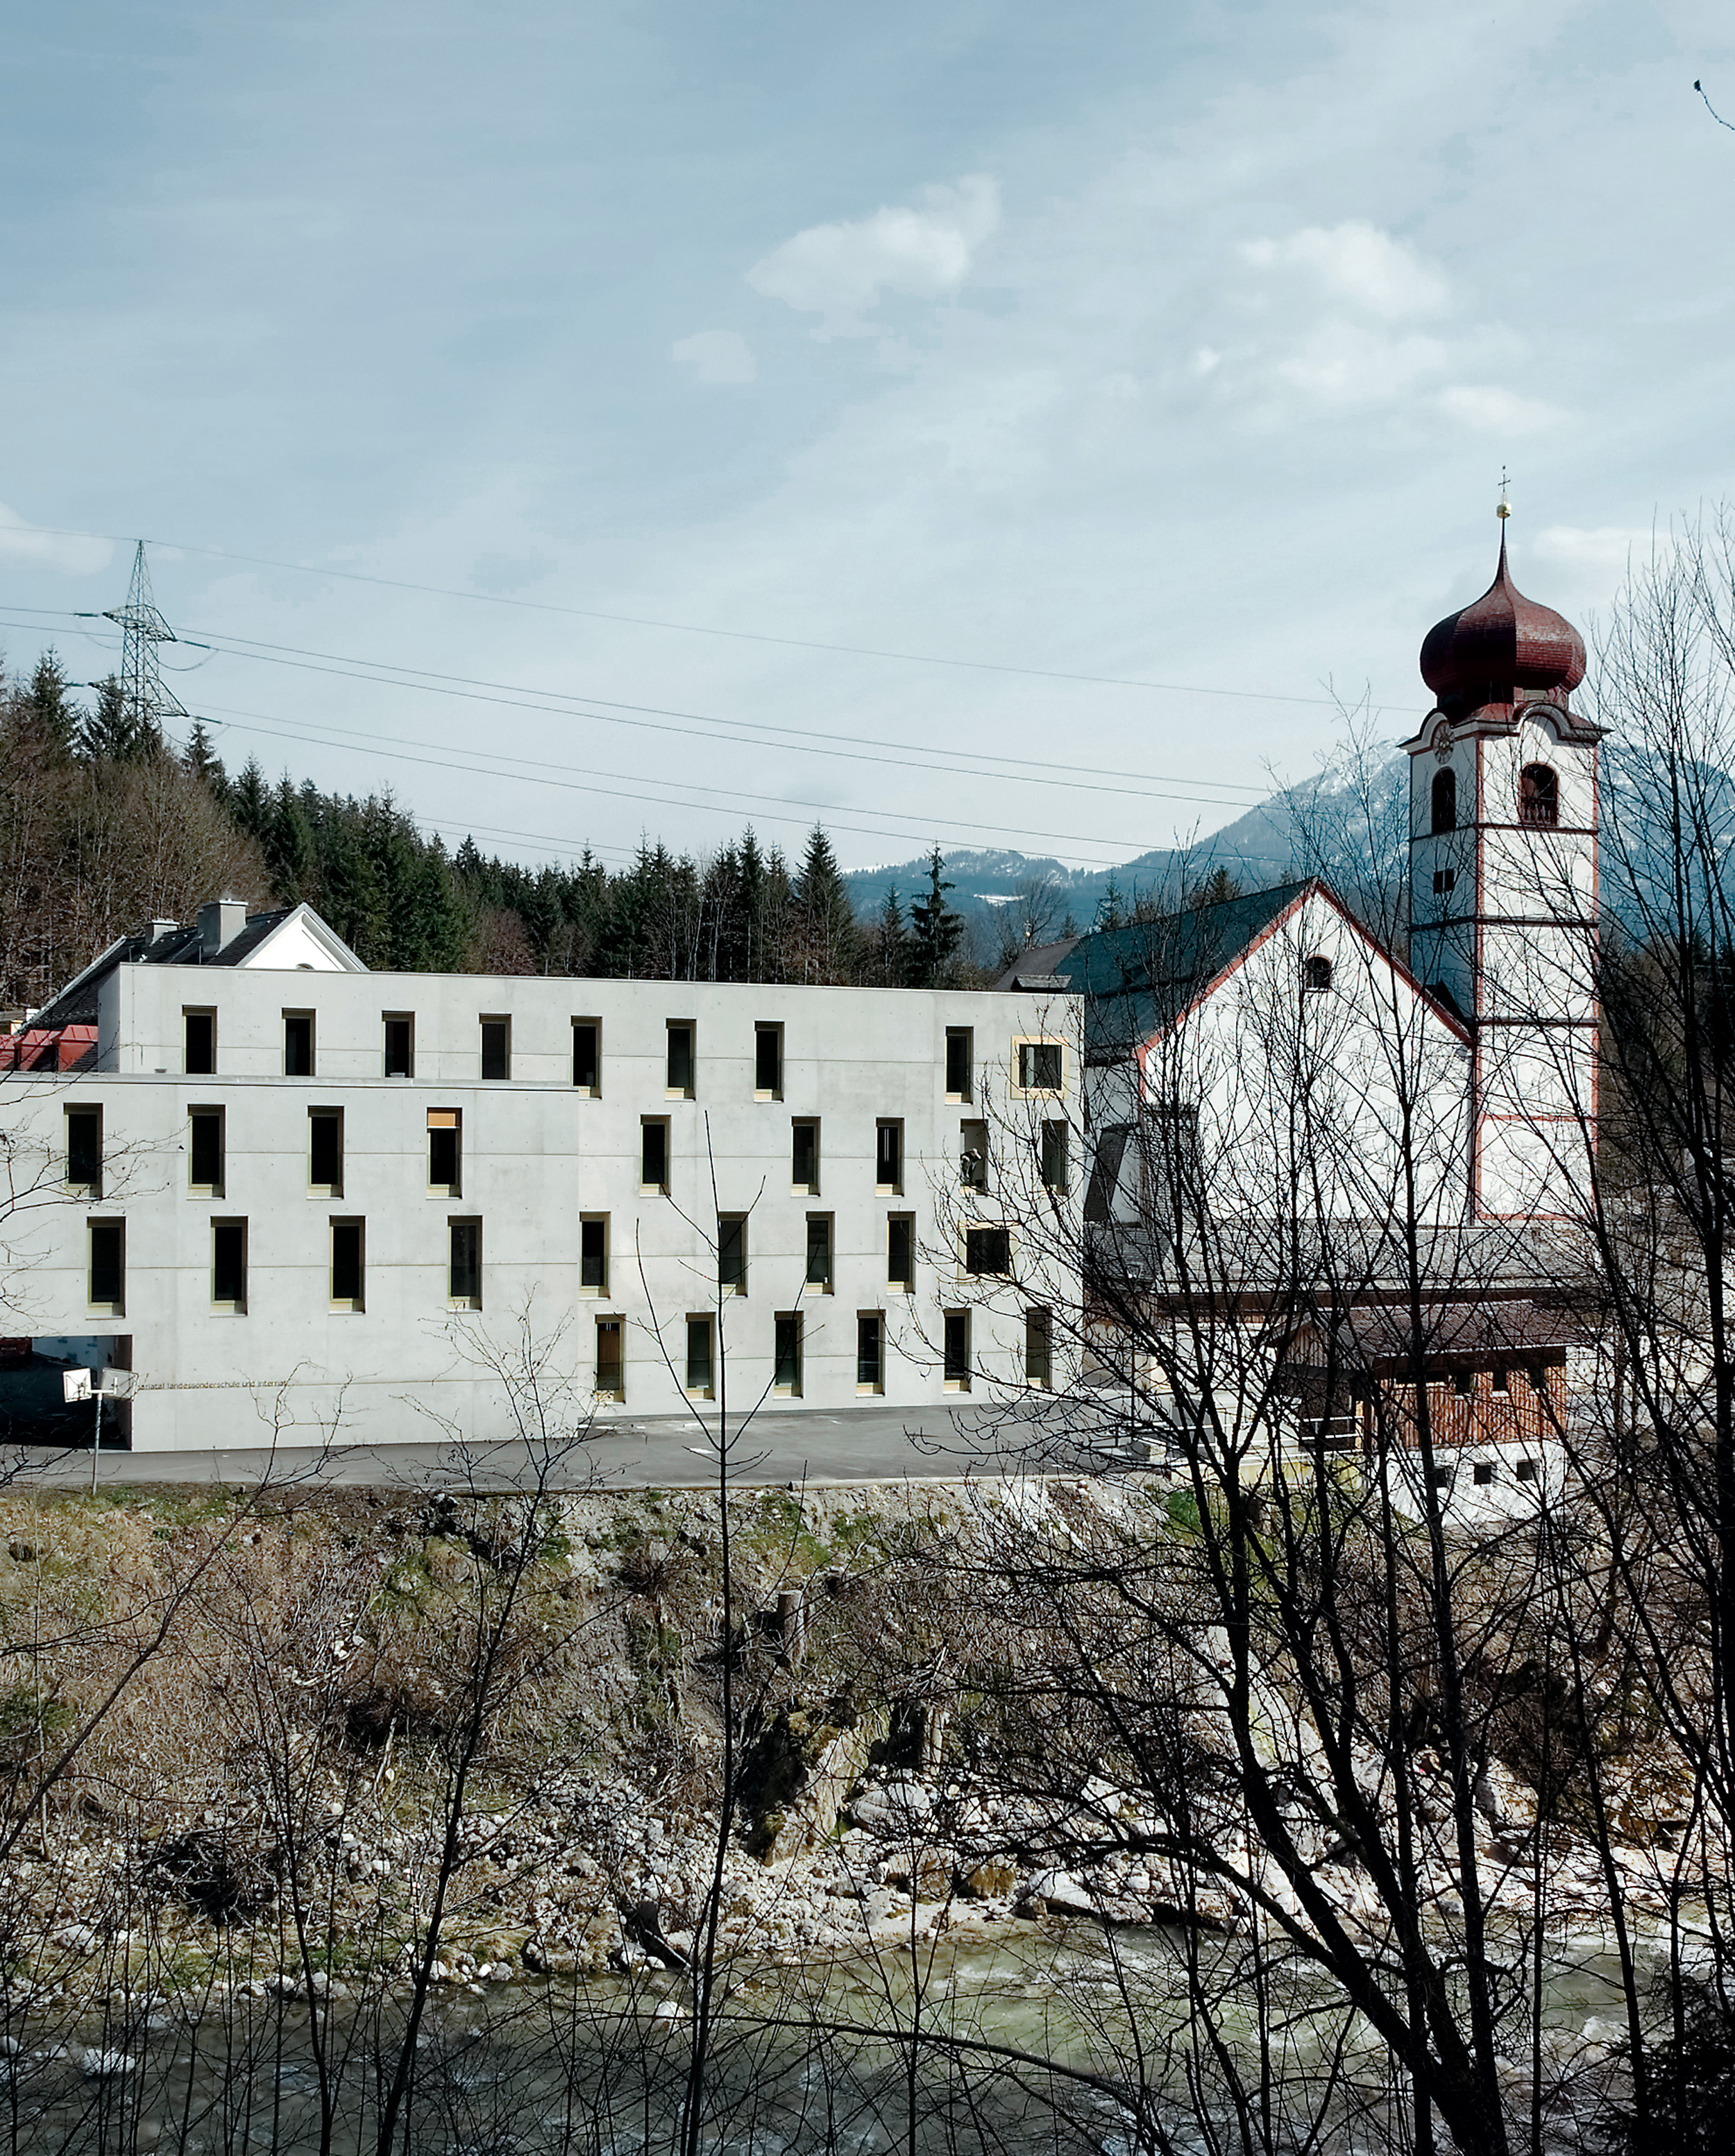 School and Residence for Children with Disabilities, Kramsach